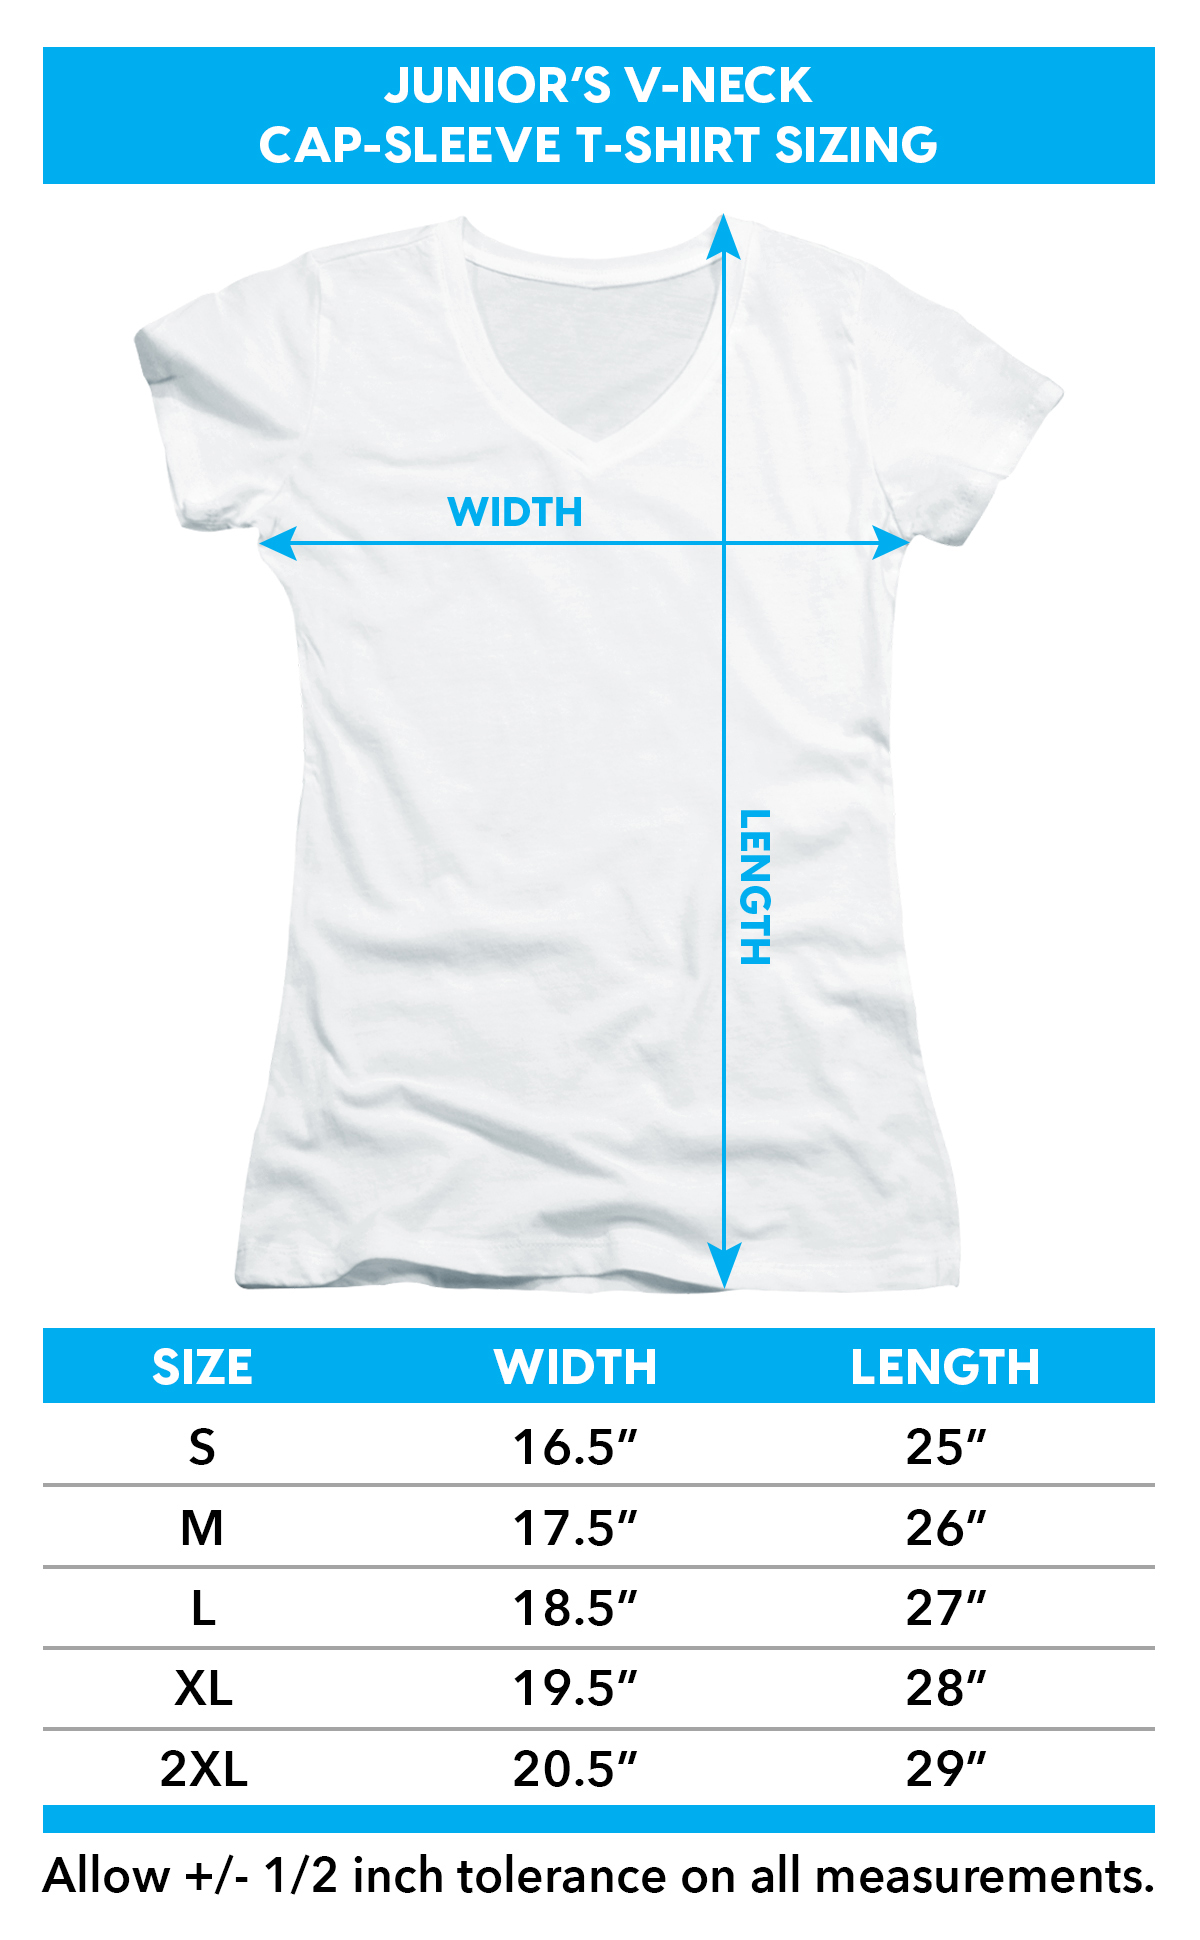 Sizing chart for The Twilight Zone Girls V Neck T-Shirt - Logo TRV-CBS1001-JV